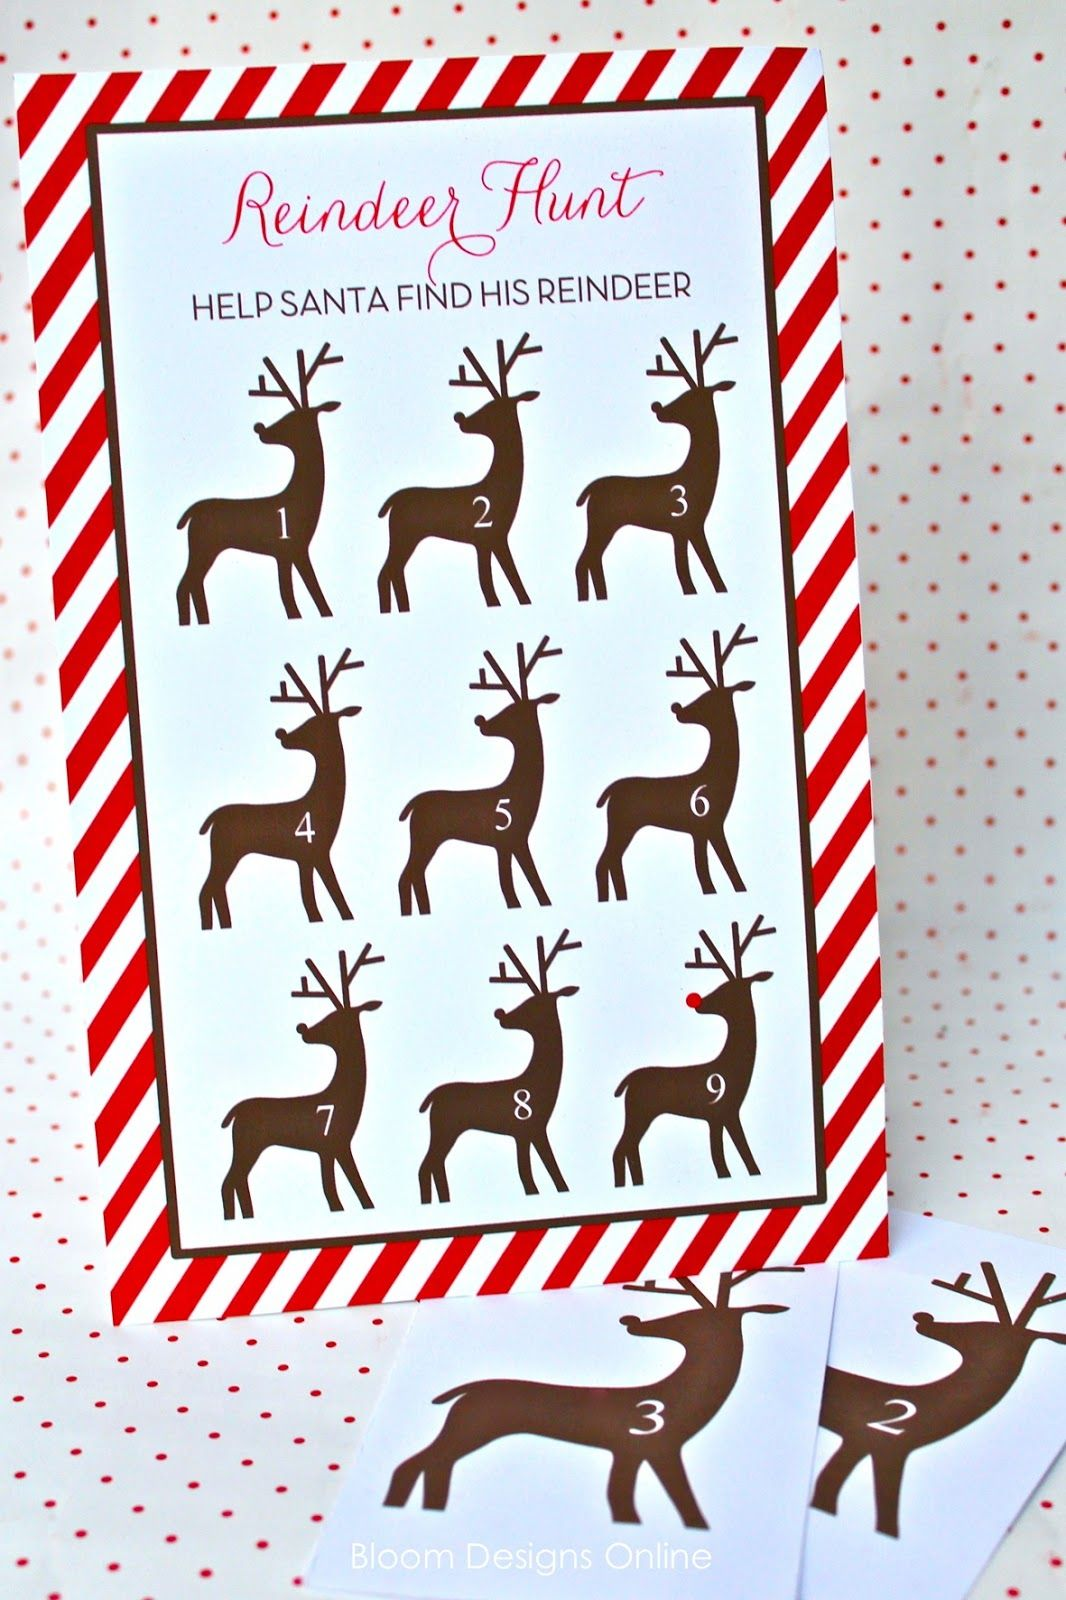 Reindeer Scavenger Hunt Game Print The Reindeer Cut Out